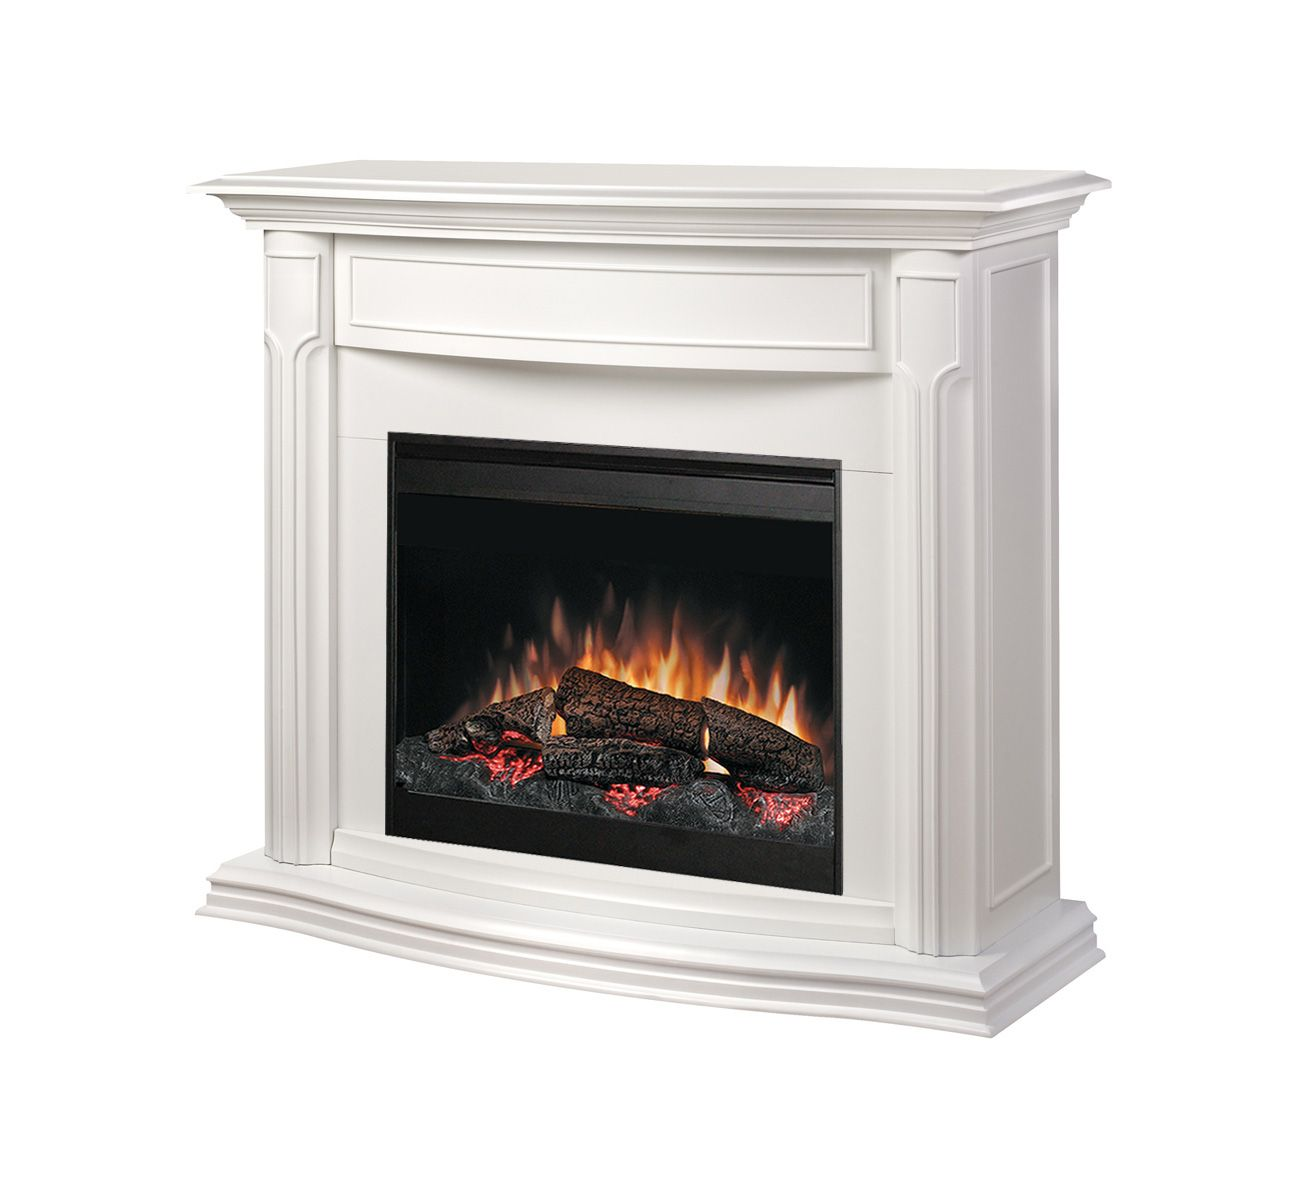 497 00 Electric Fireplace